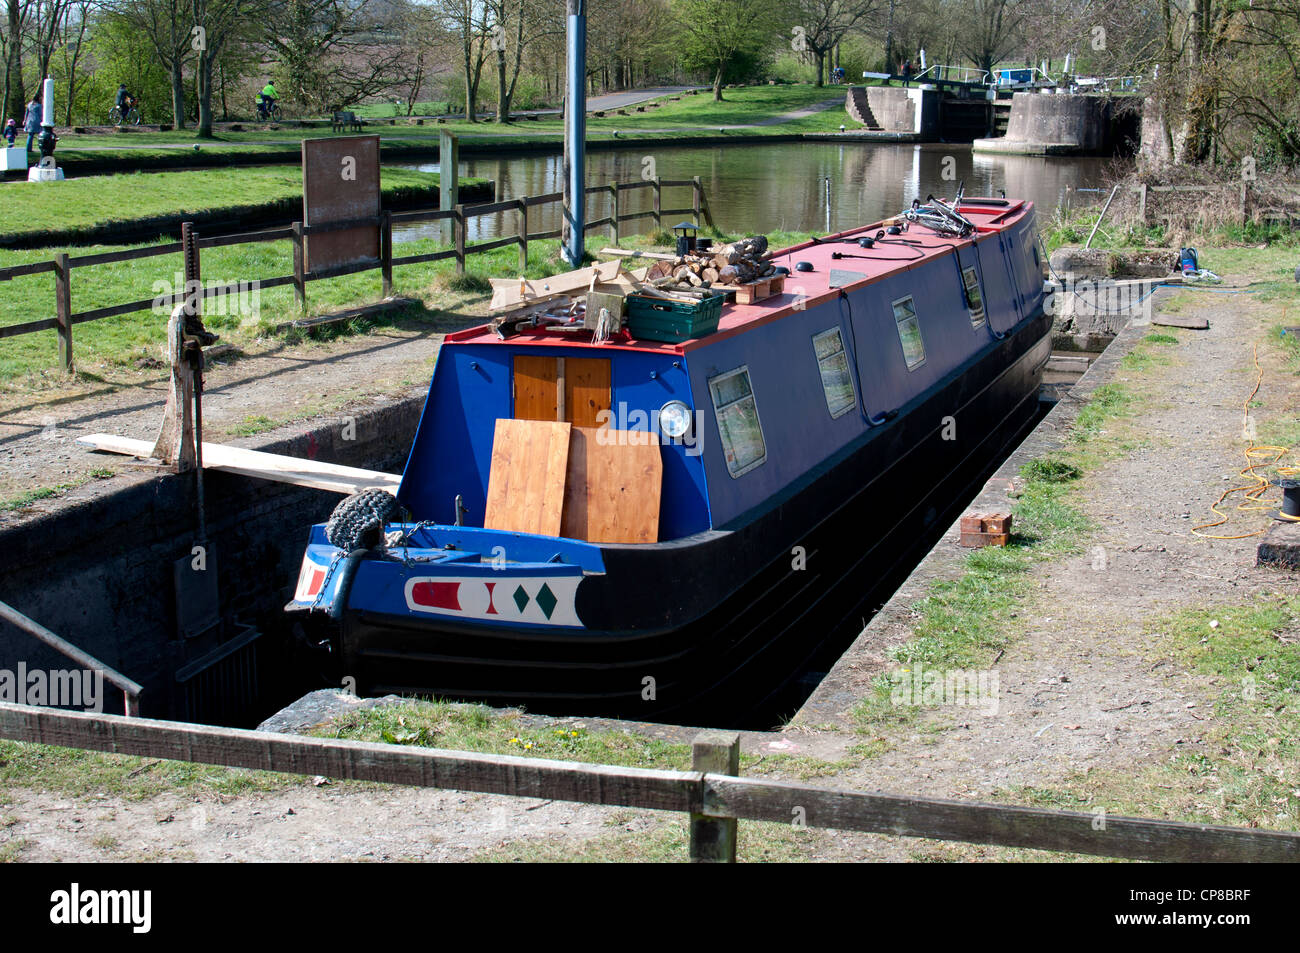 Narrowboat in a dry dock - Stock Image